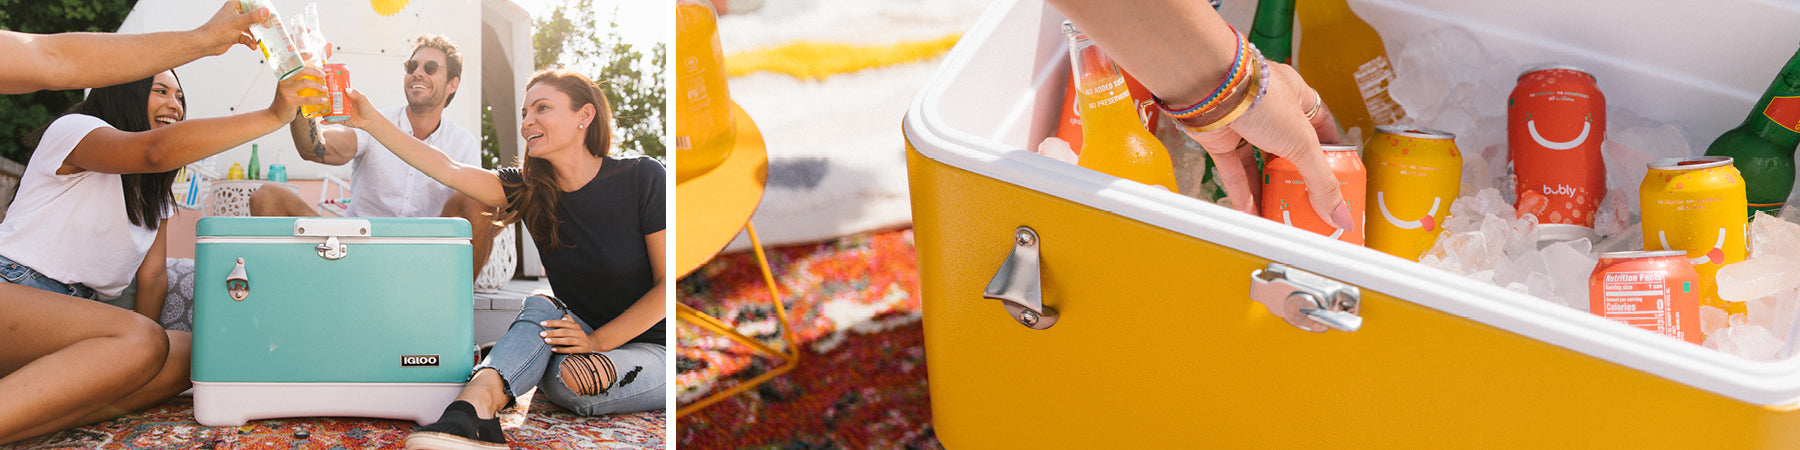 Stainless Steel Legacy Cooler